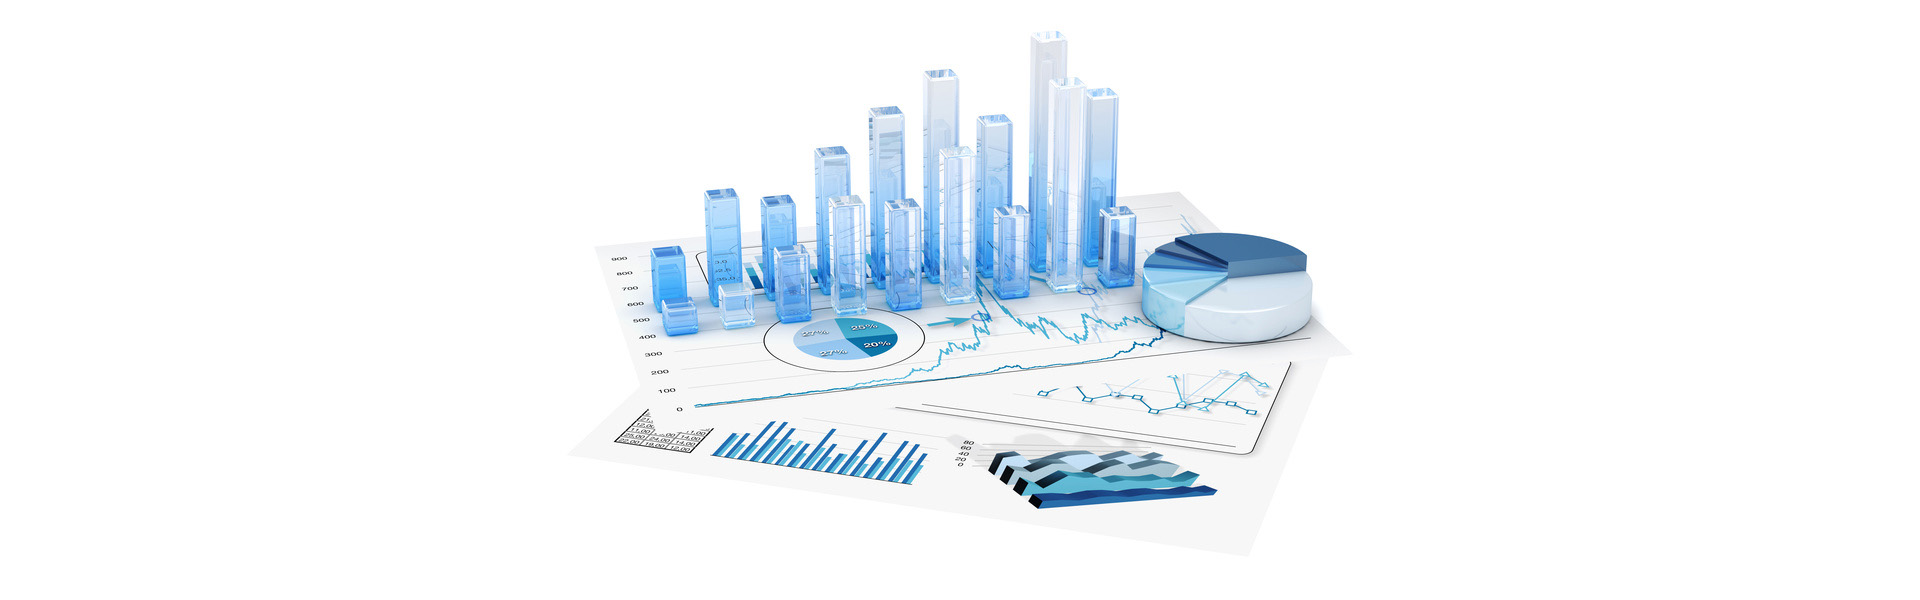 Graphs of financial analysis – Isolated